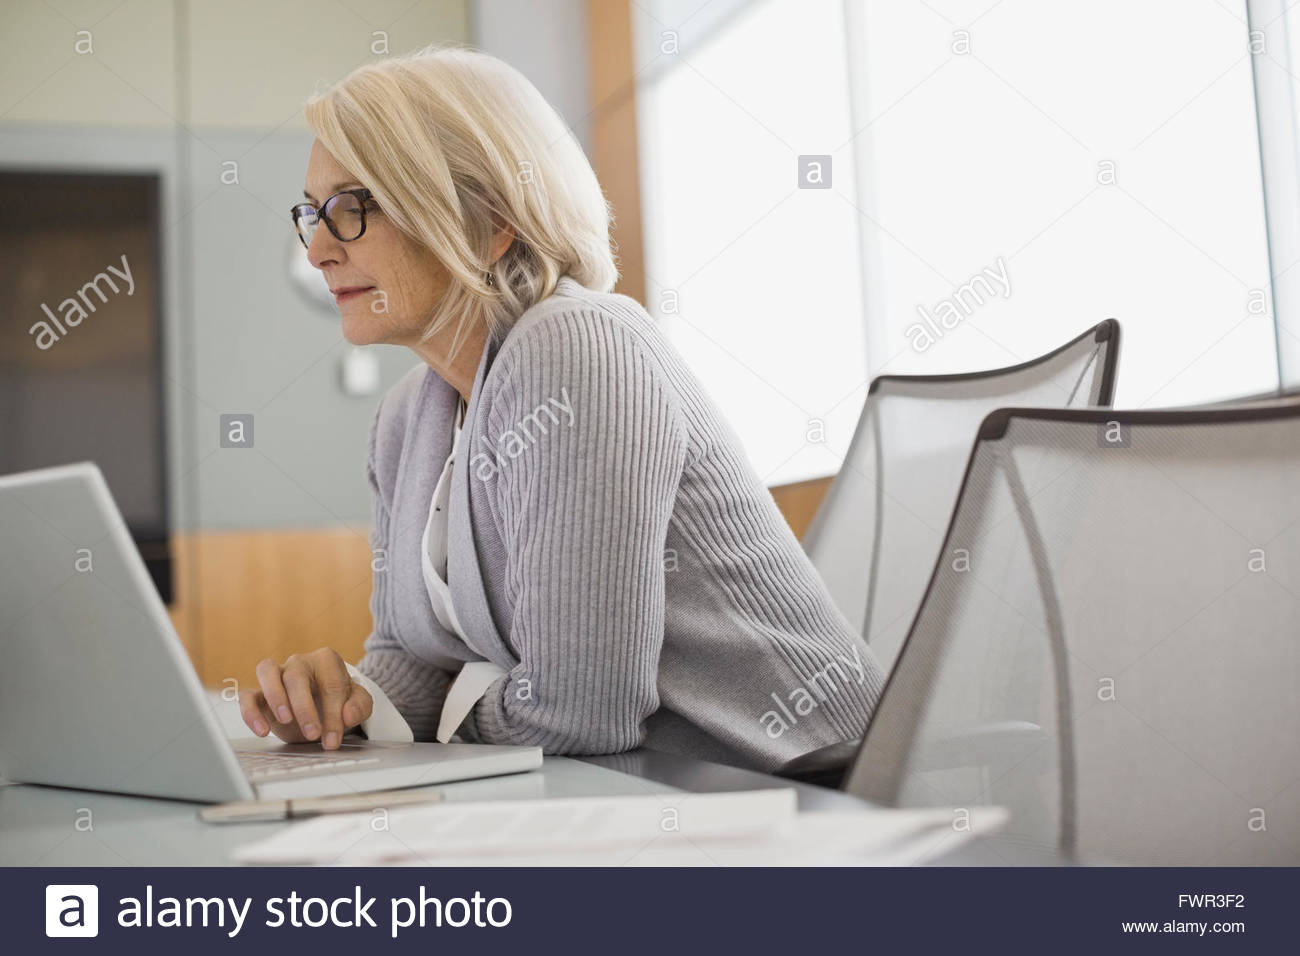 Businesswoman using laptop at conference table - Stock Image